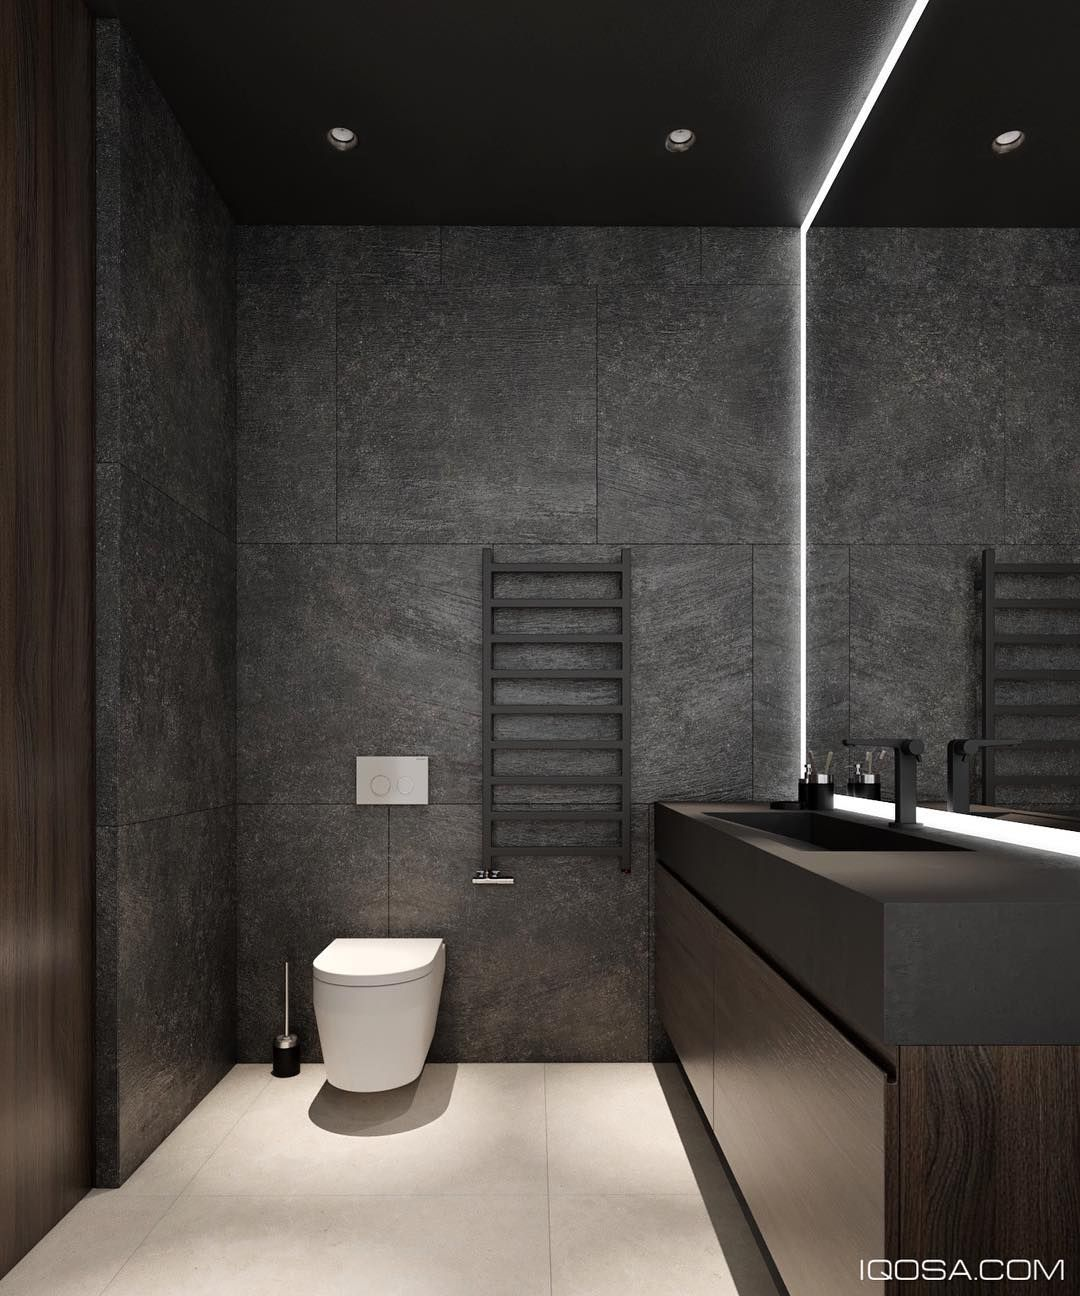 656 Likes 8 Comments Interior Designer Architect Iqosa On Instagram The Next Project Of The Apartm Toilet Design Modern Washroom Design Toilet Design